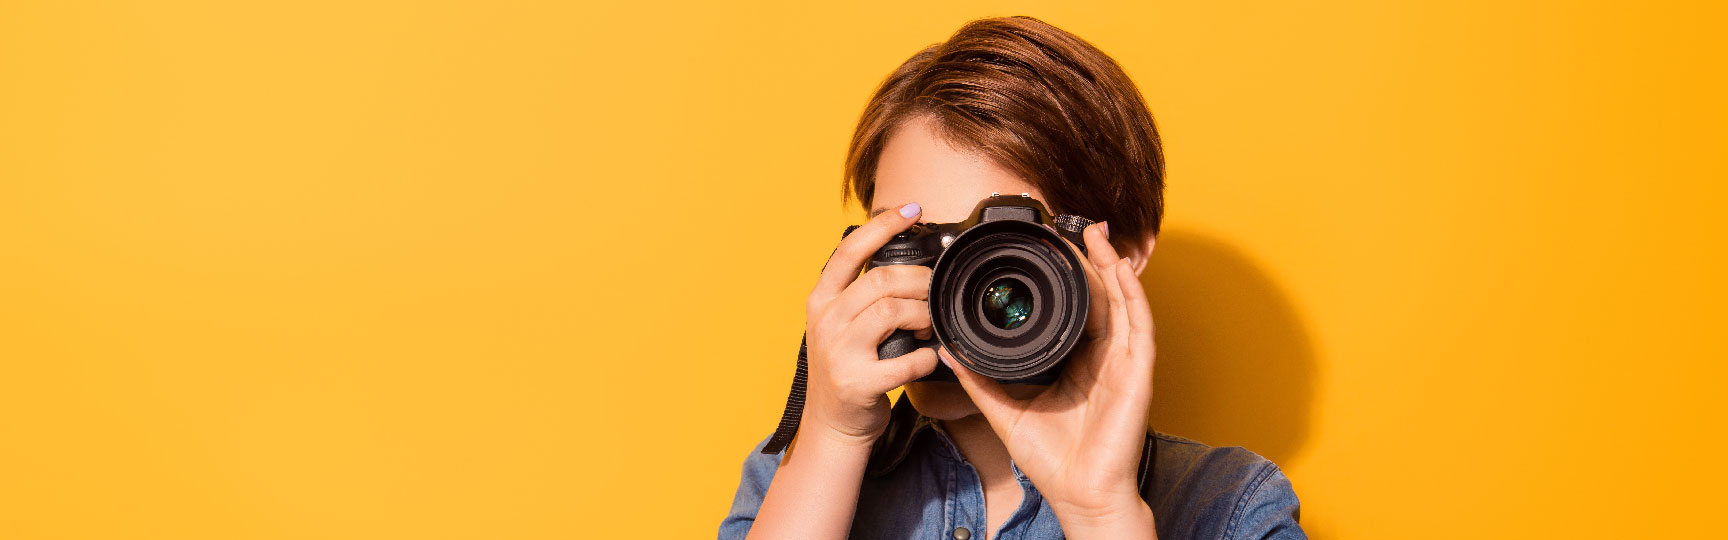 6 Types Of Photos To Enhance Your Digital Content